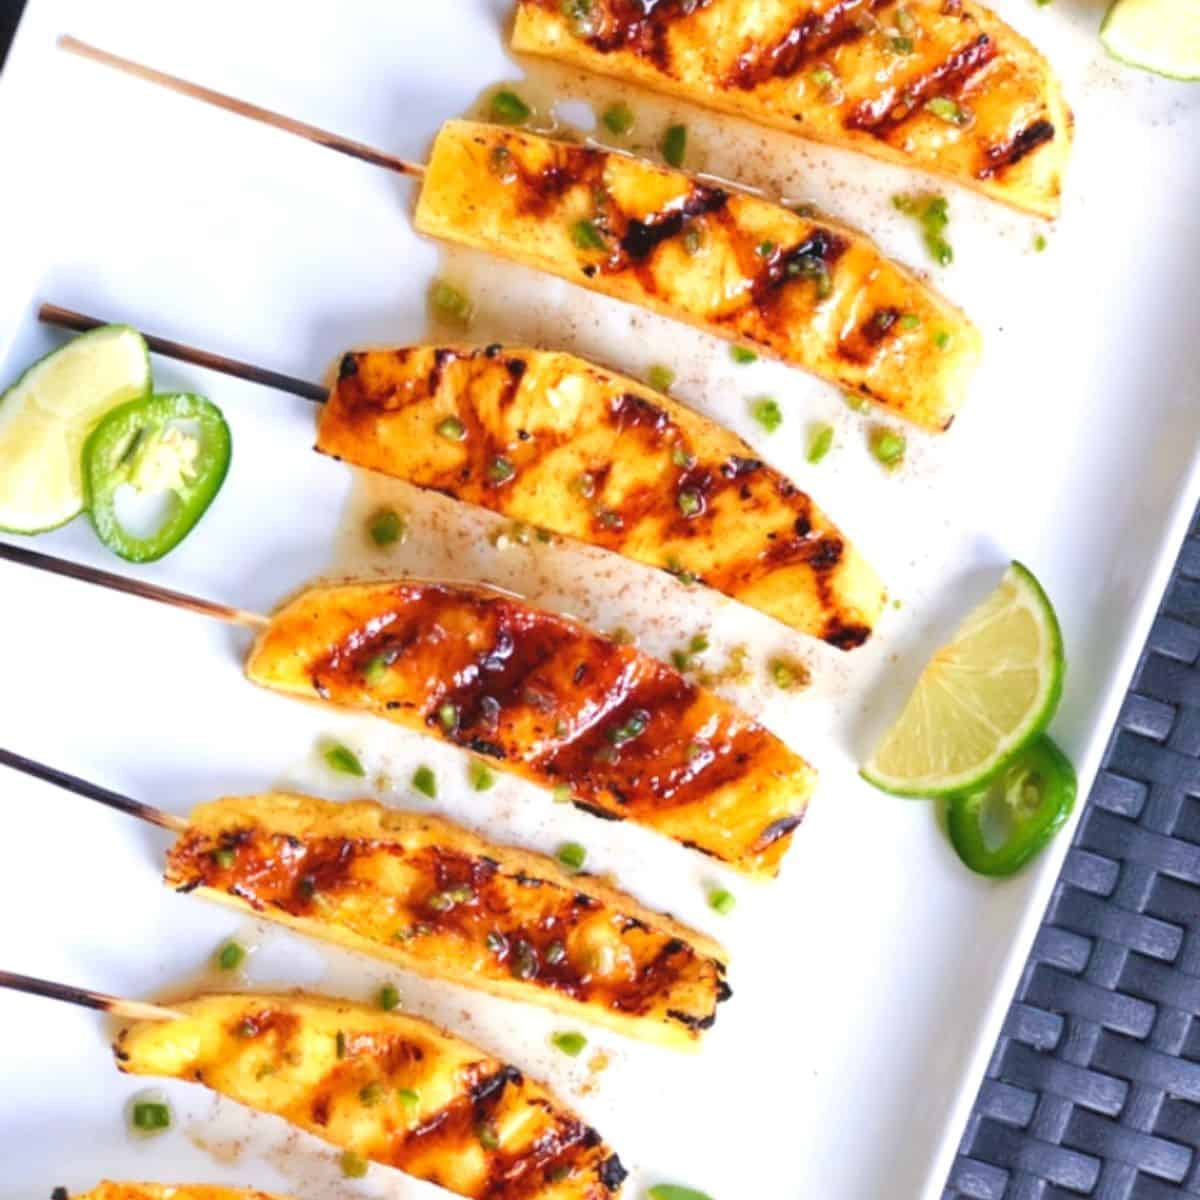 Grilled pineapple spears on a plate.